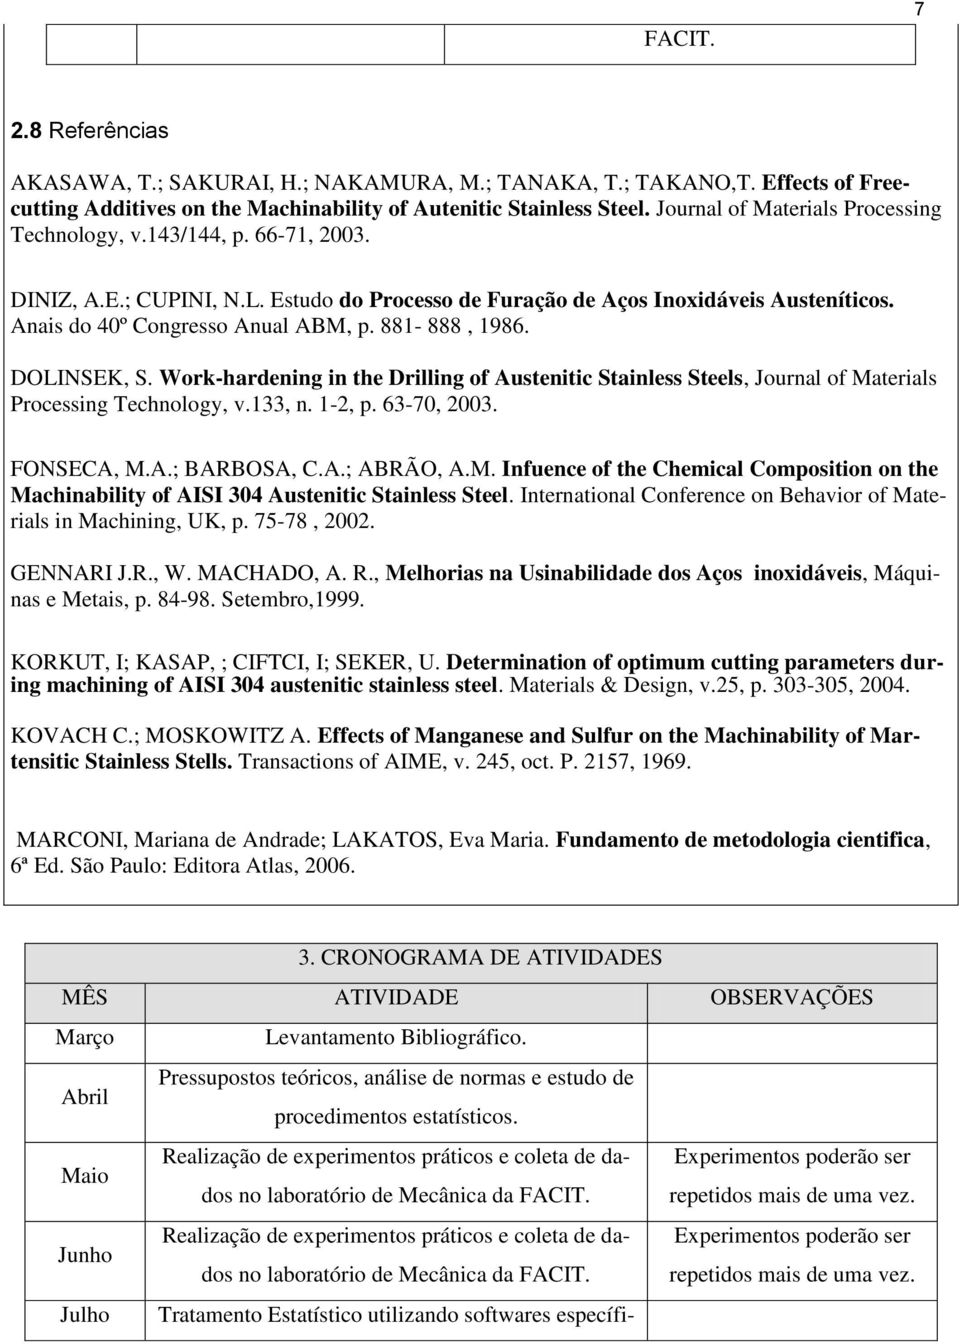 881-888, 1986. DOLINSEK, S. Work-hardening in the Drilling of Austenitic Stainless Steels, Journal of Materials Processing Technology, v.133, n. 1-2, p. 63-70, 2003. FONSECA, M.A.; BARBOSA, C.A.; ABRÃO, A.